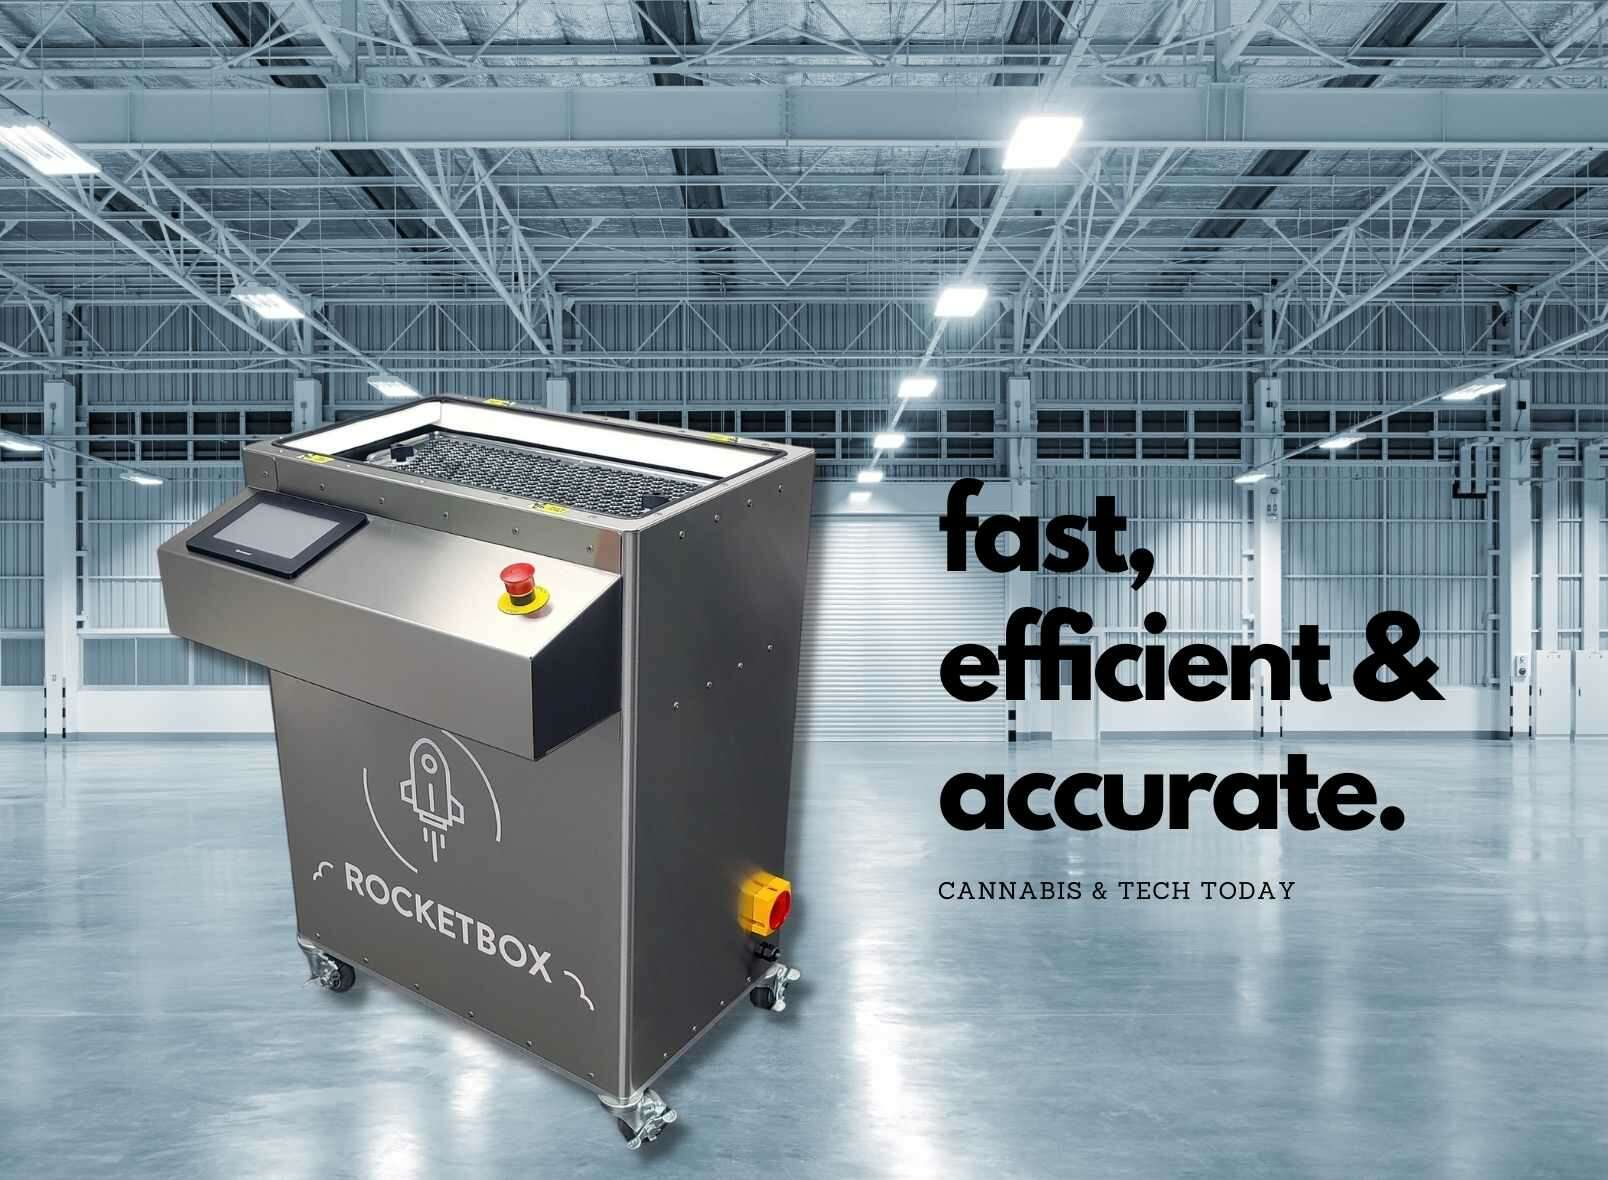 RocketBox 2.0 Pre-Roll Machine and joint roller is fast, efficient and accurate